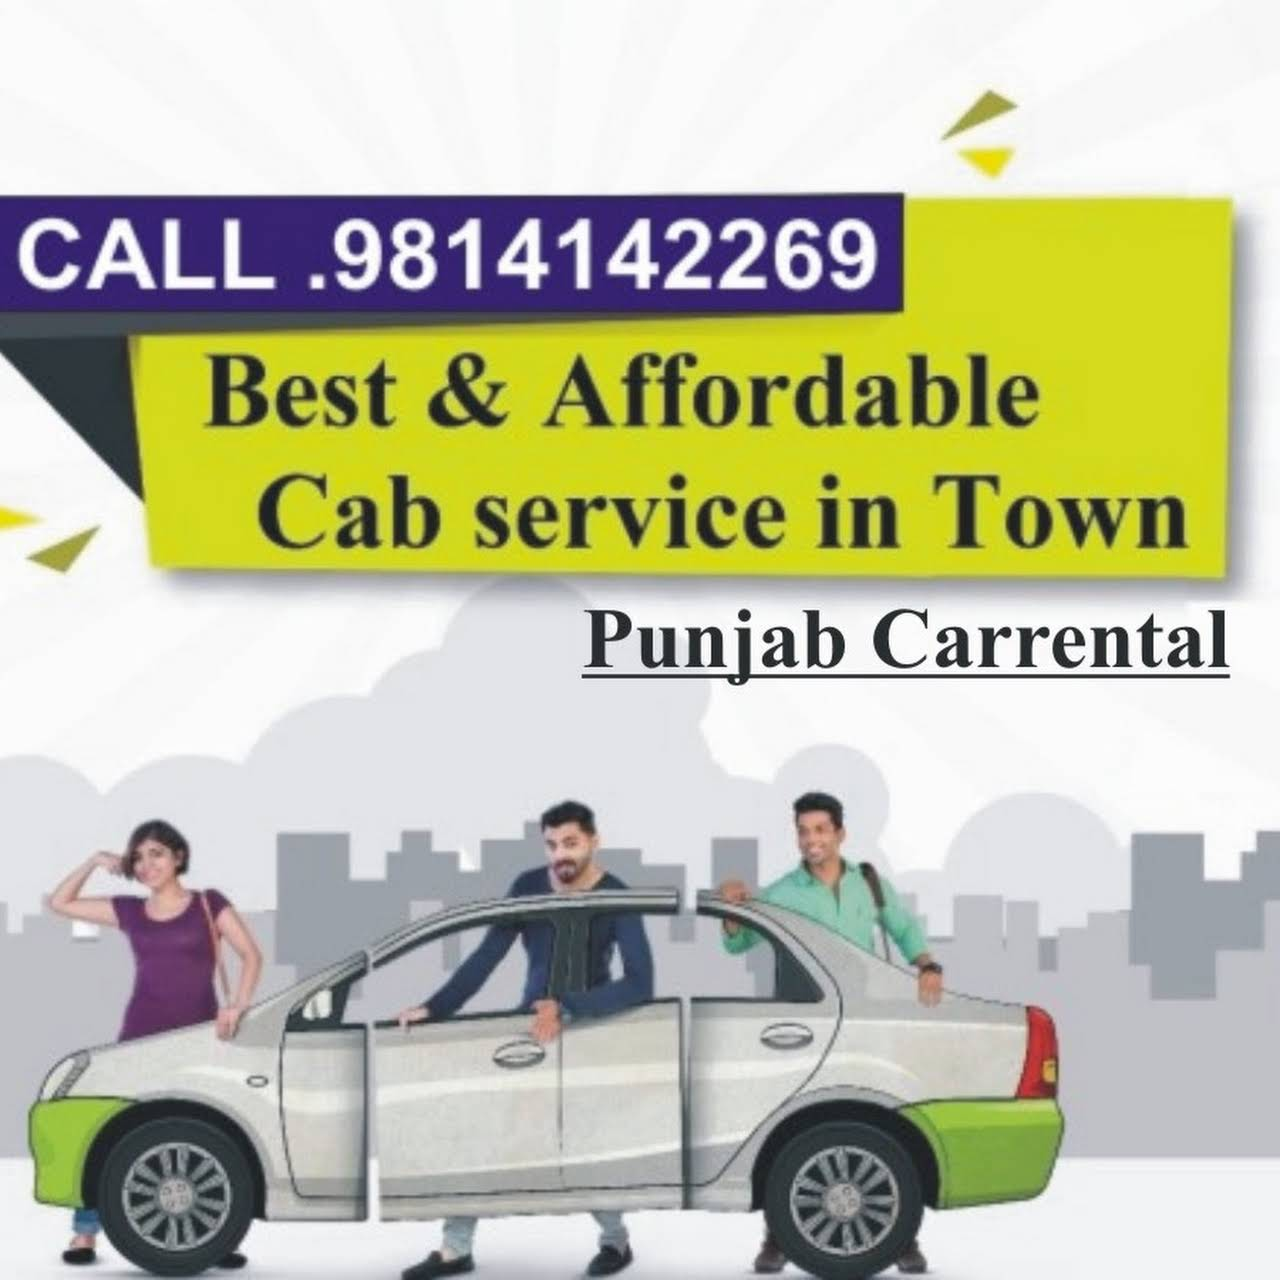 Punjab Carrental - Taxi Service in Jalandhar